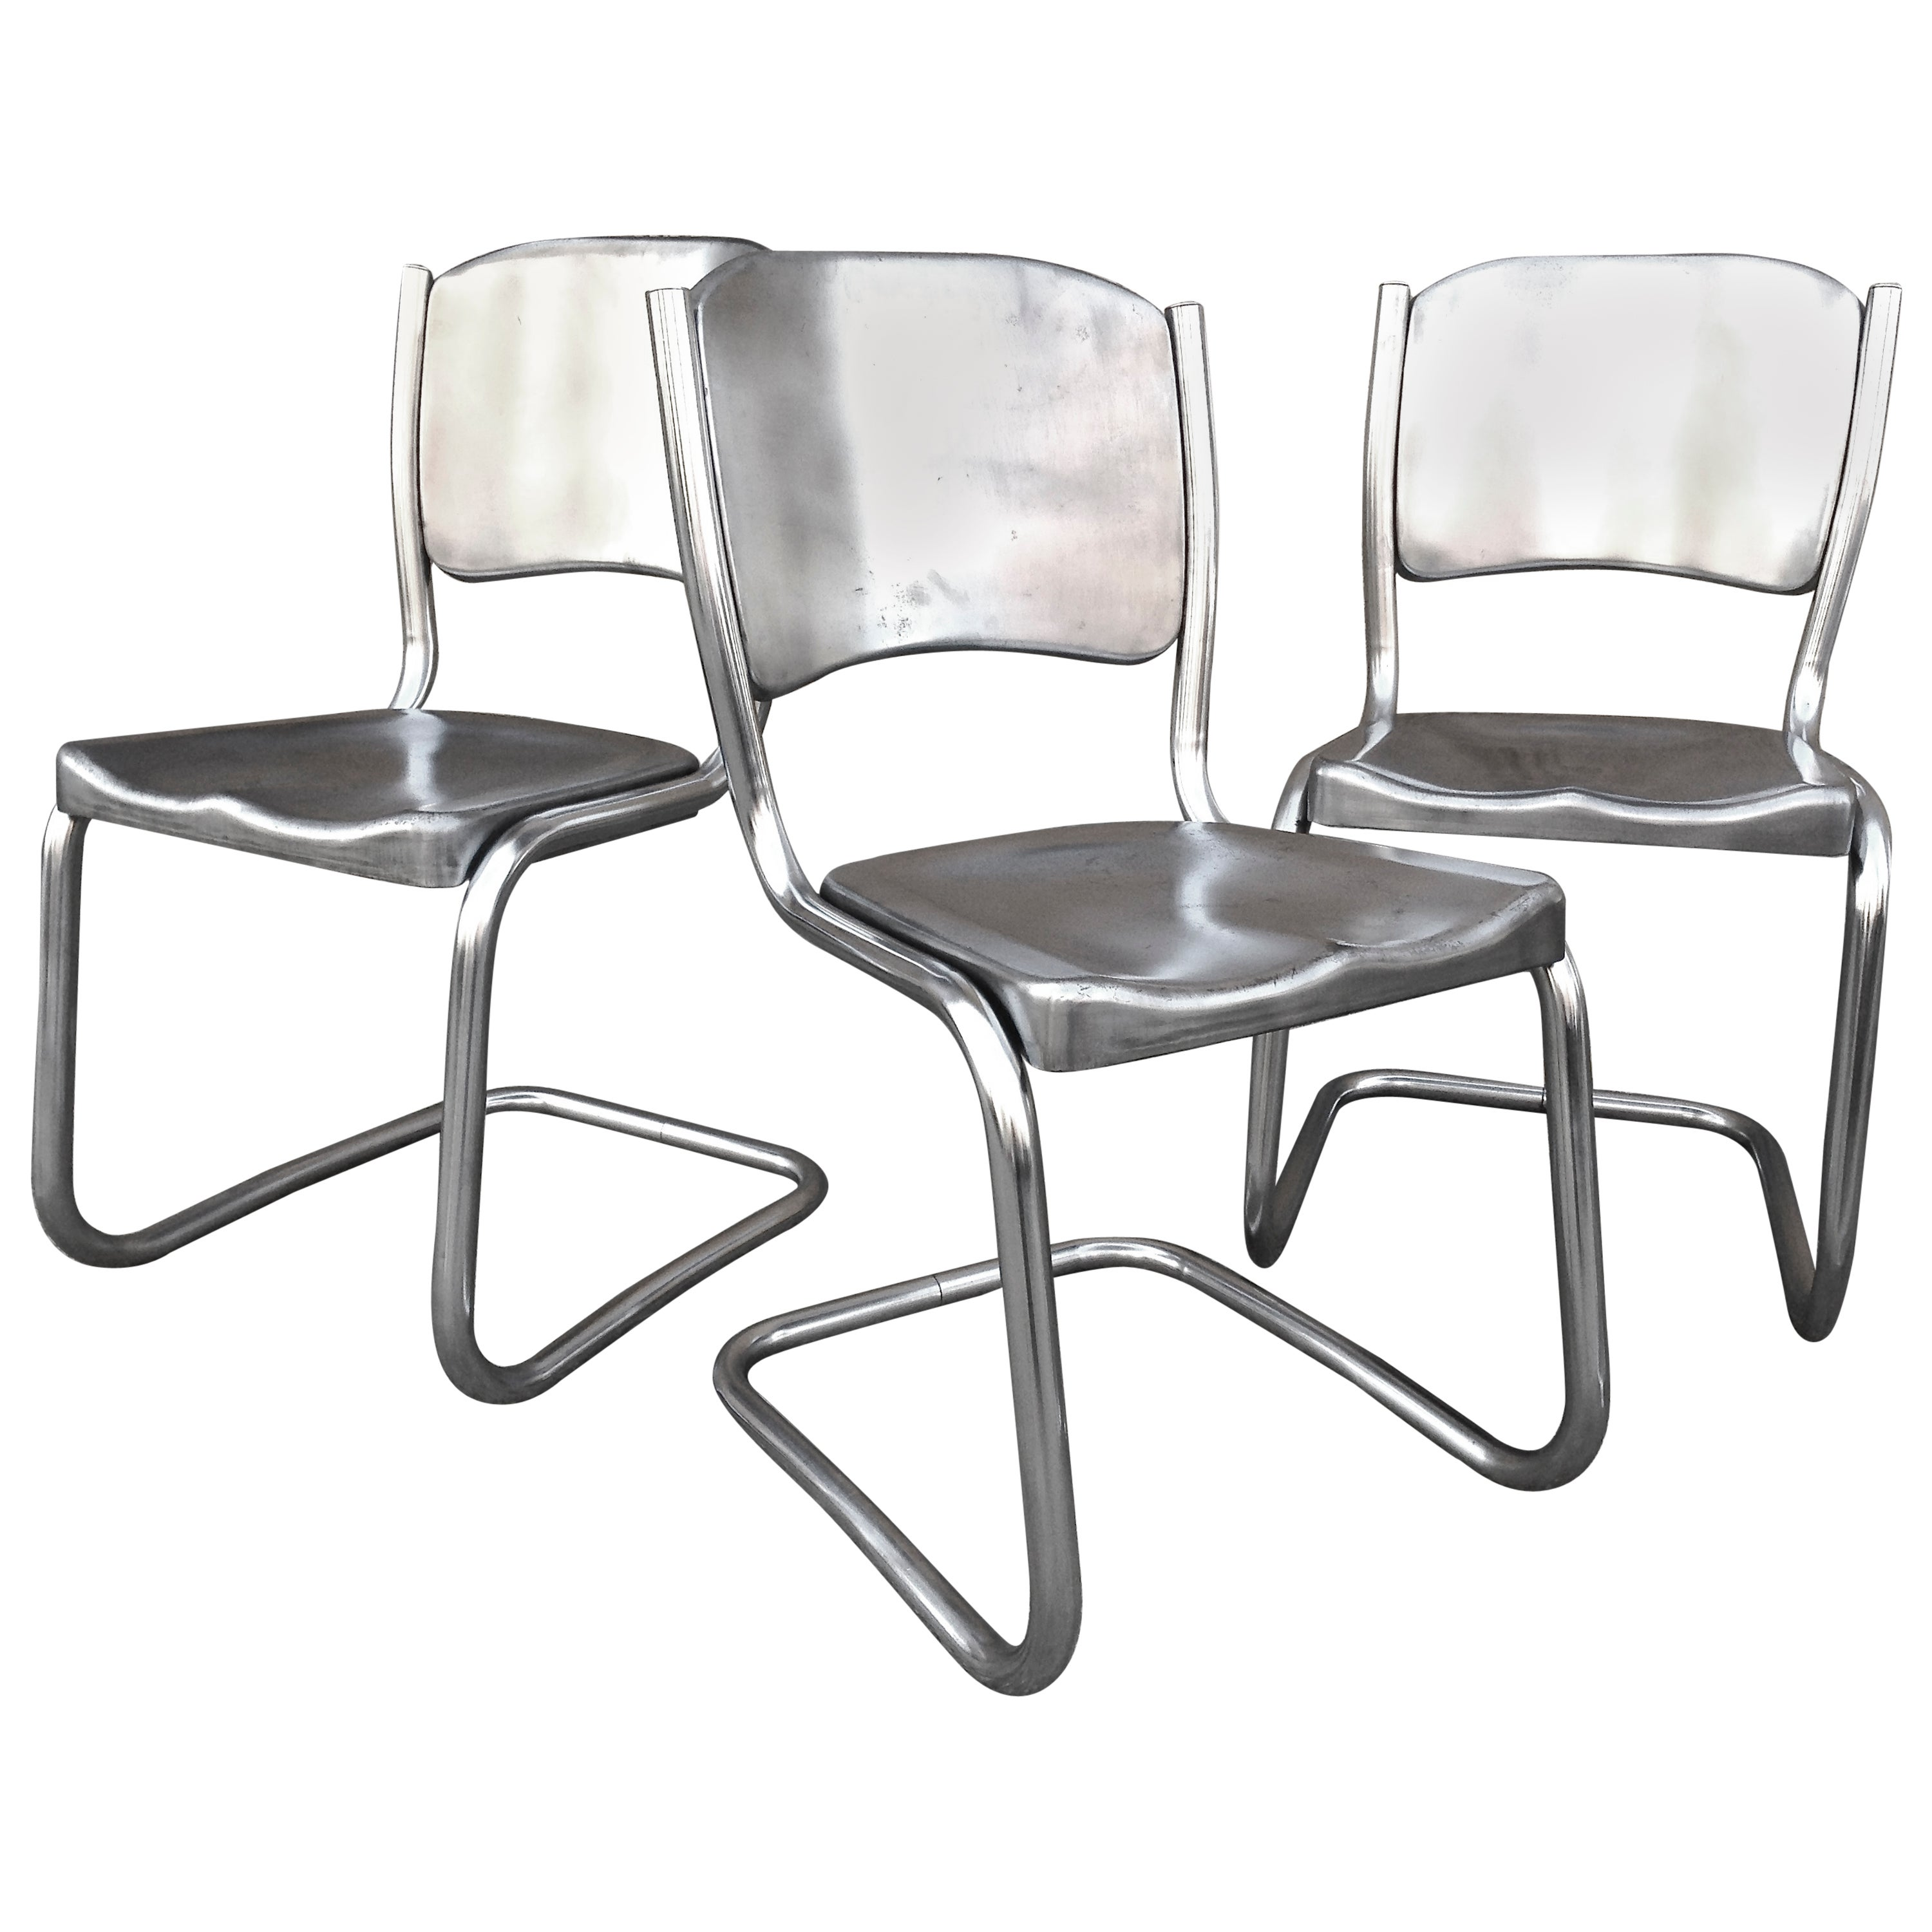 Set of Eight Tubular Brushed Steel Dining Chairs